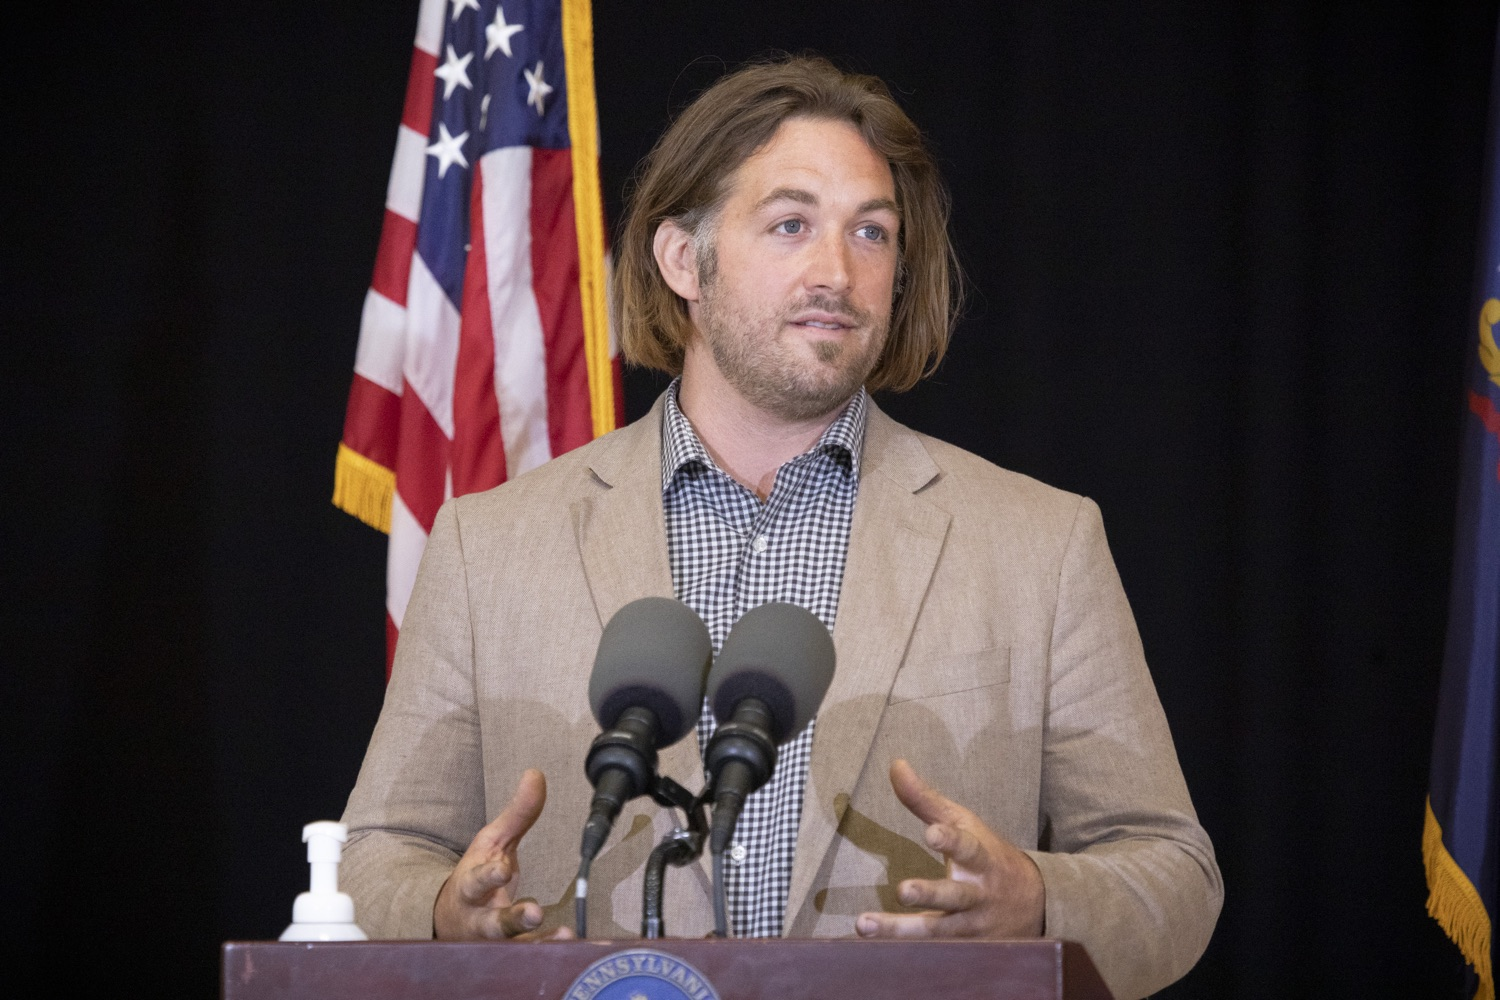 """<a href=""""https://filesource.wostreaming.net/commonwealthofpa/photo/18310_gov_adult_use_cannabis_dz_008.jpg"""" target=""""_blank"""">⇣Download Photo<br></a>Eric Titus White, hemp farmer speaks to the press.Governor Tom Wolf visited The Mountain Center in Tobyhanna, Monroe County today to talk about the economic growth potential and restorative justice benefits of legalizing adult-use cannabis, something the state General Assembly has not yet done despite multiple requests from the governor and Lieutenant Governor John Fetterman to take up legislation this fall.  Tobyhanna, PA  October 13, 2020"""